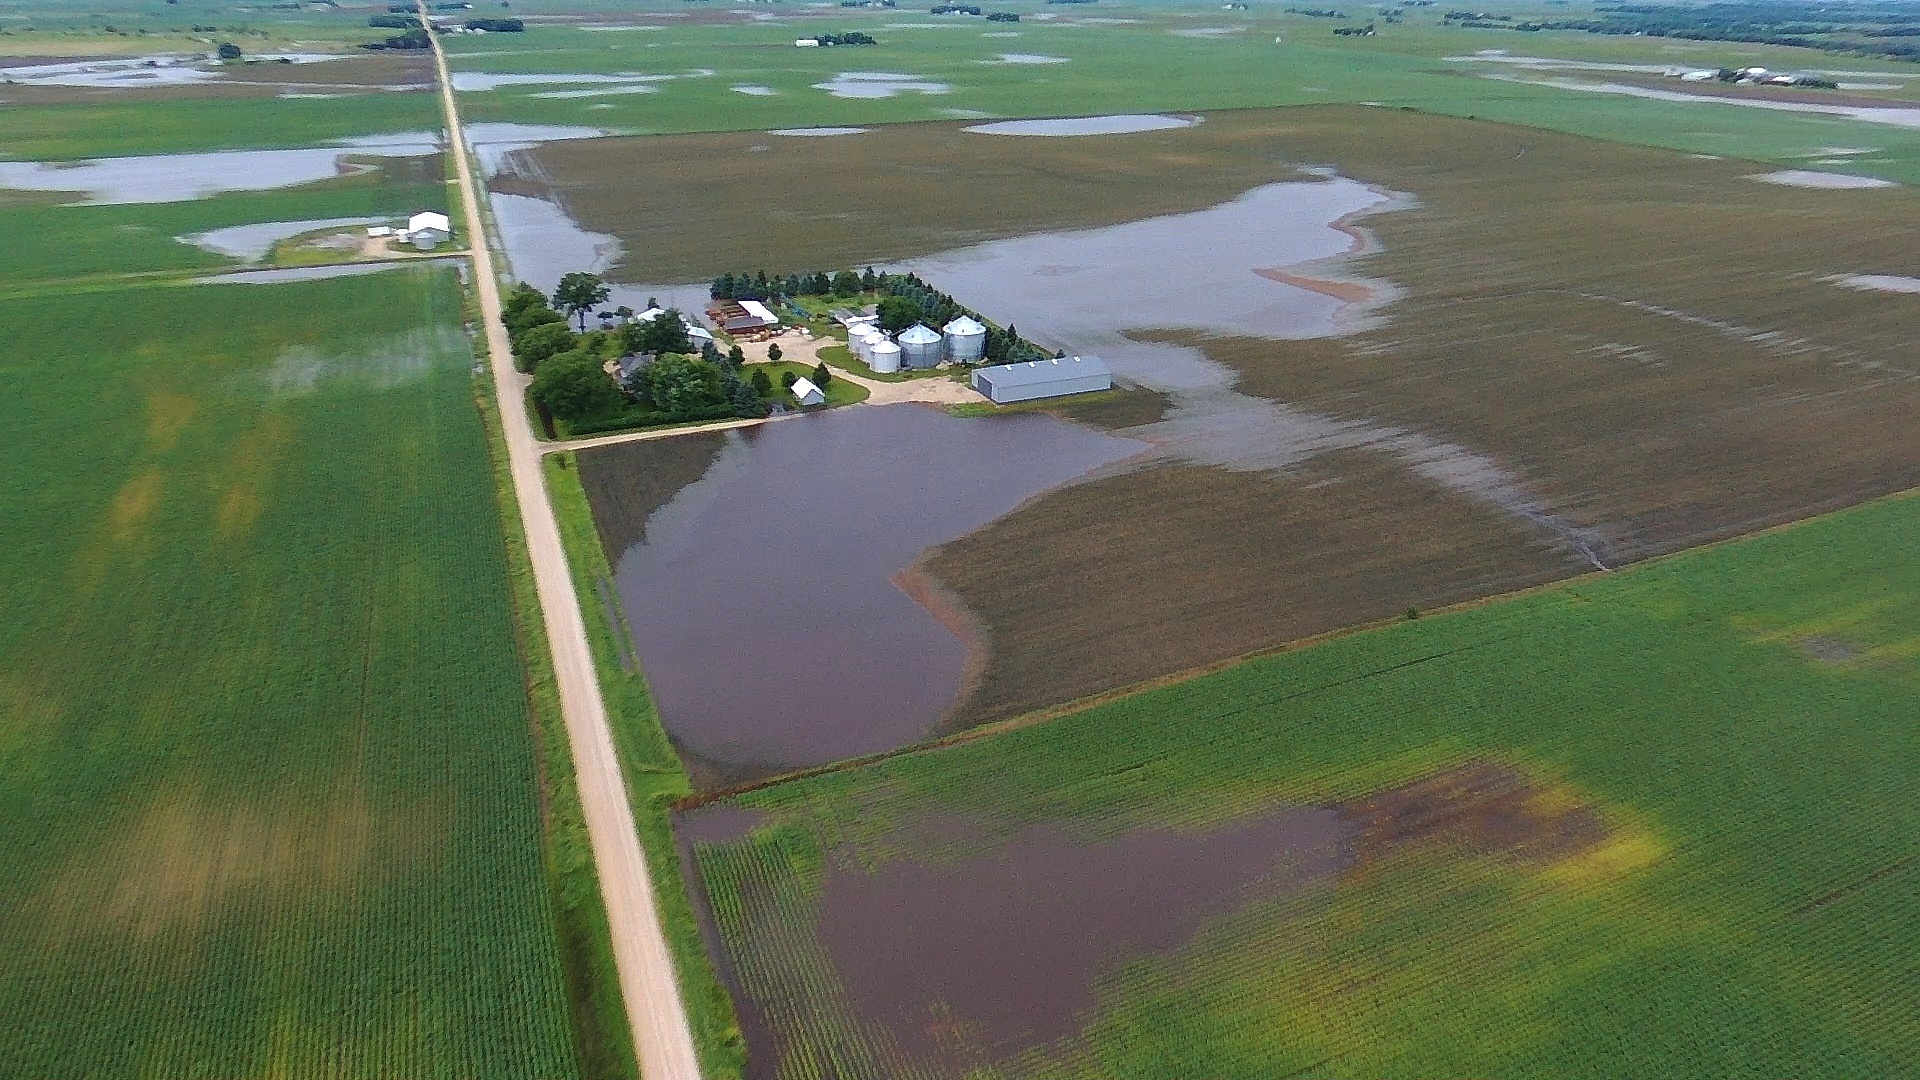 Drone images of floaded fields in Iowa